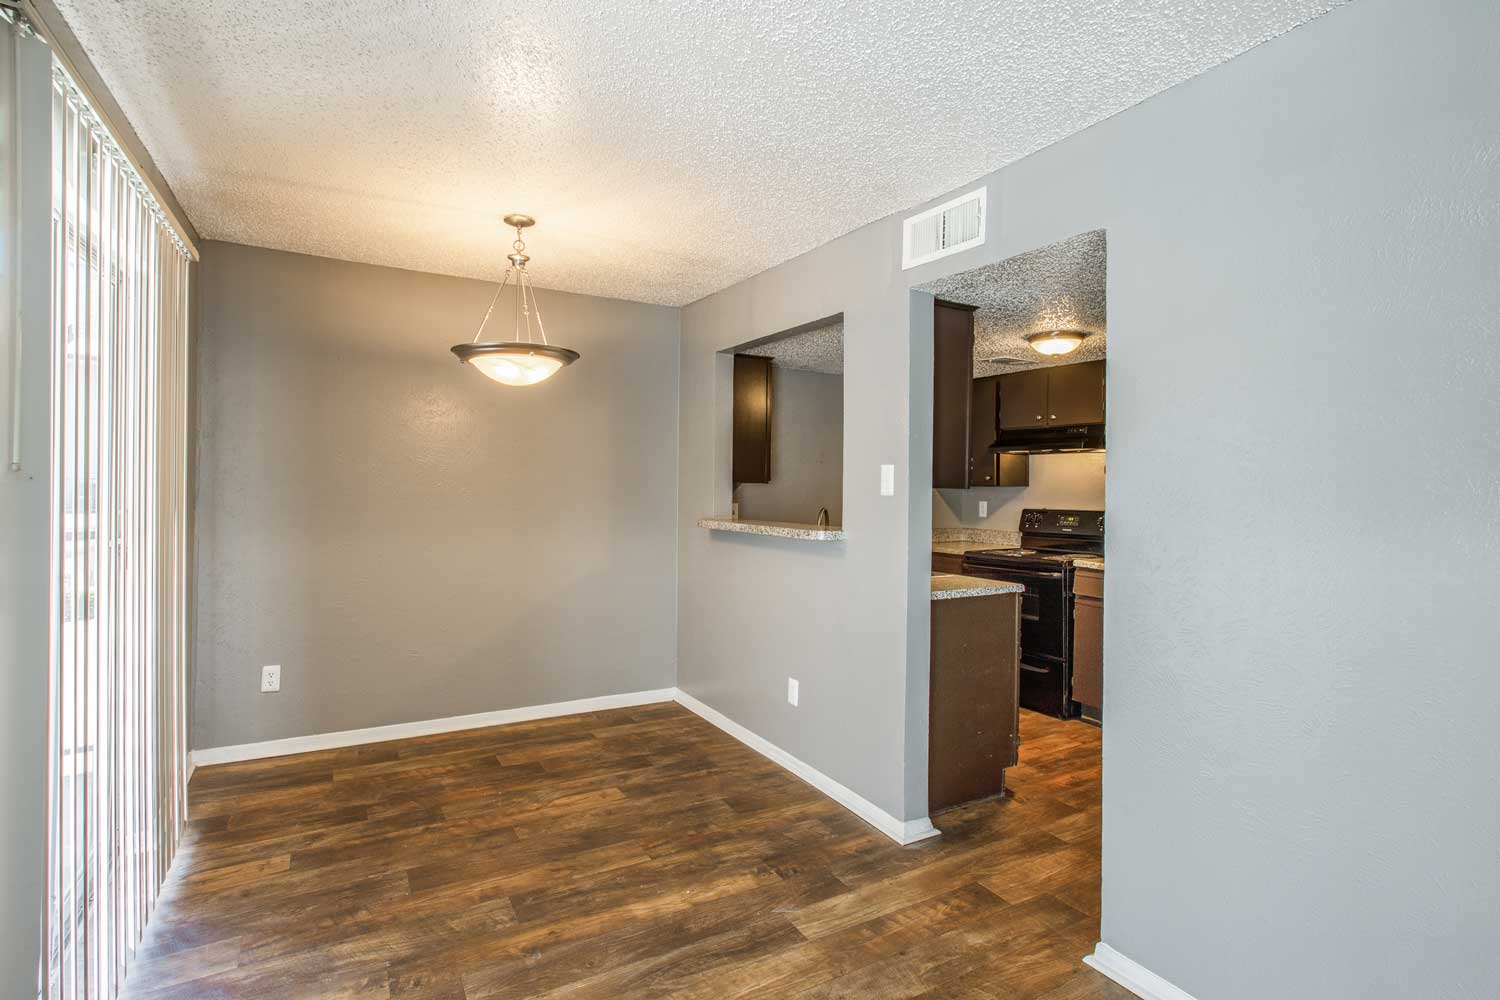 Wood Flooring at Cadence Apartments in Dallas, Texas